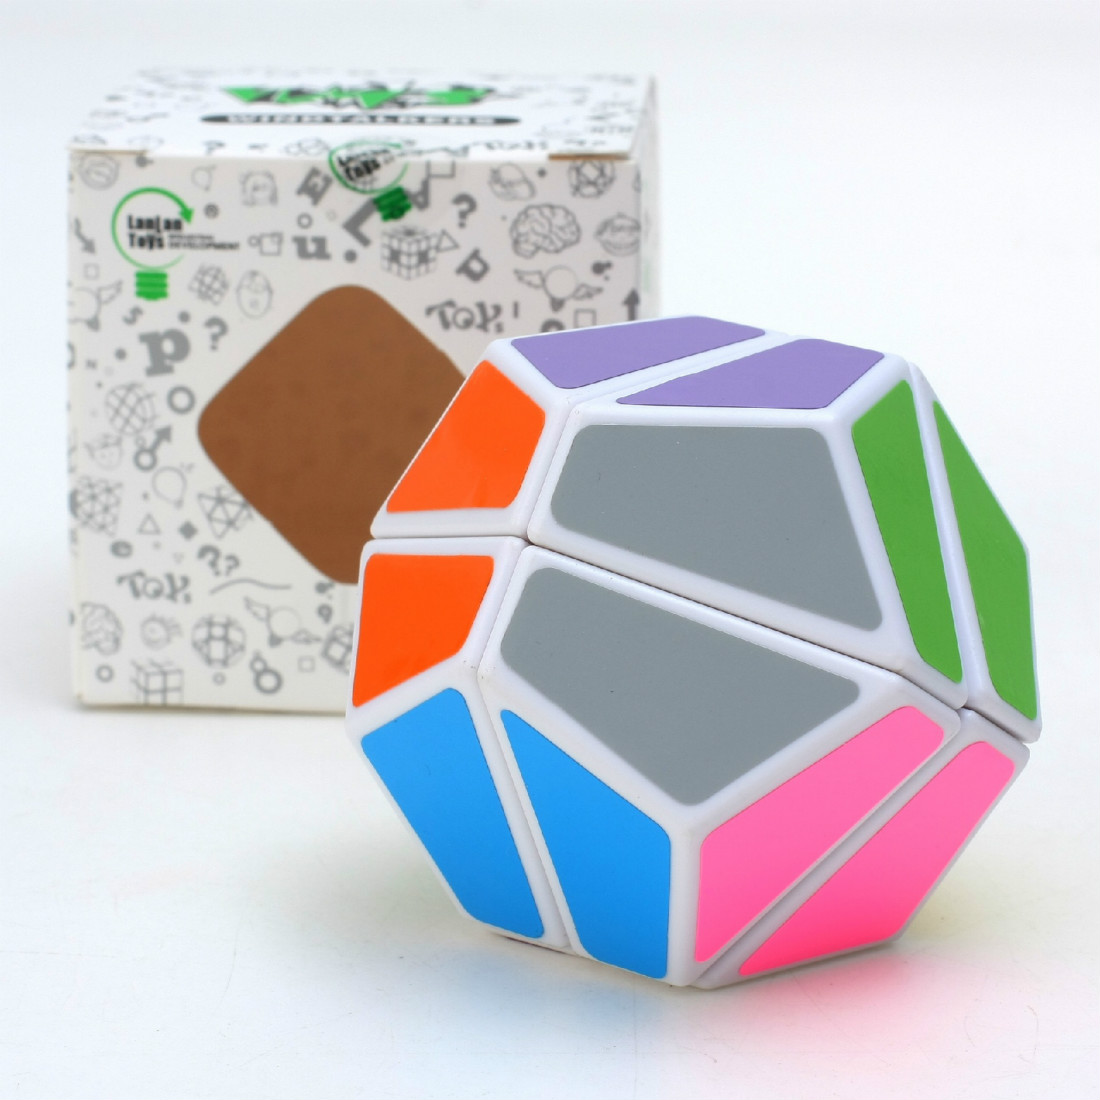 Lanlan LL 2x2x2 Magic Cube Speed Puzzle Game Cubes Educational Toys For Kids Children Birthday Gift